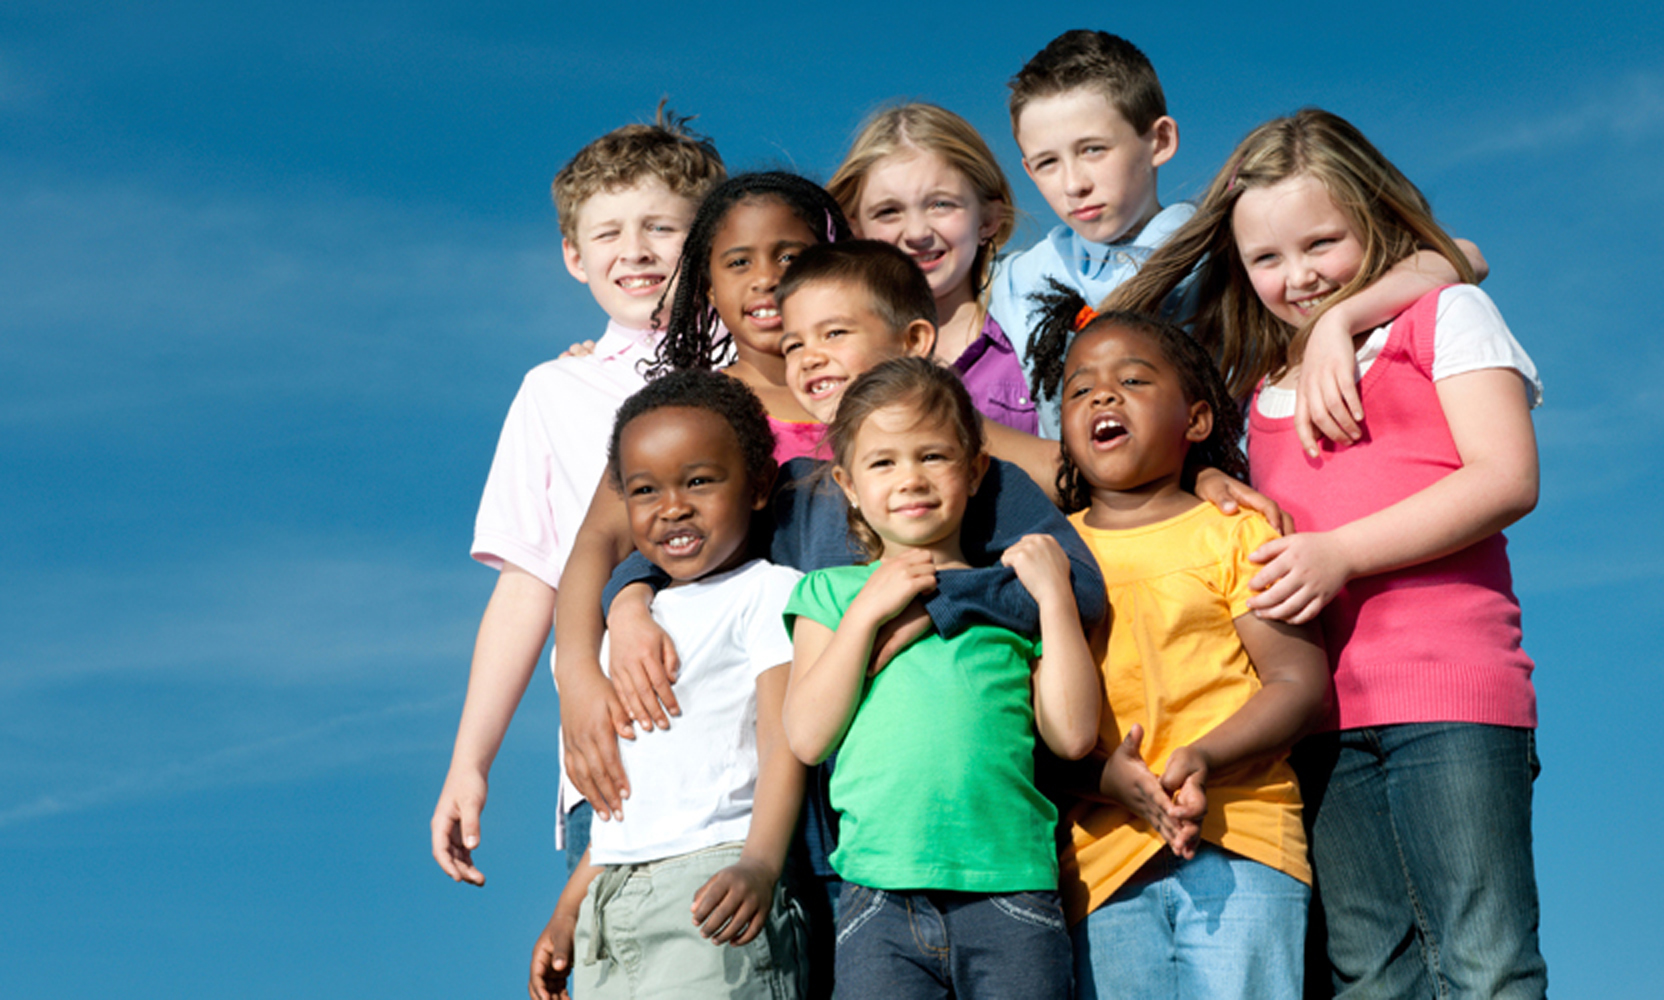 What matters in life…and how do we teach these values to our kids?